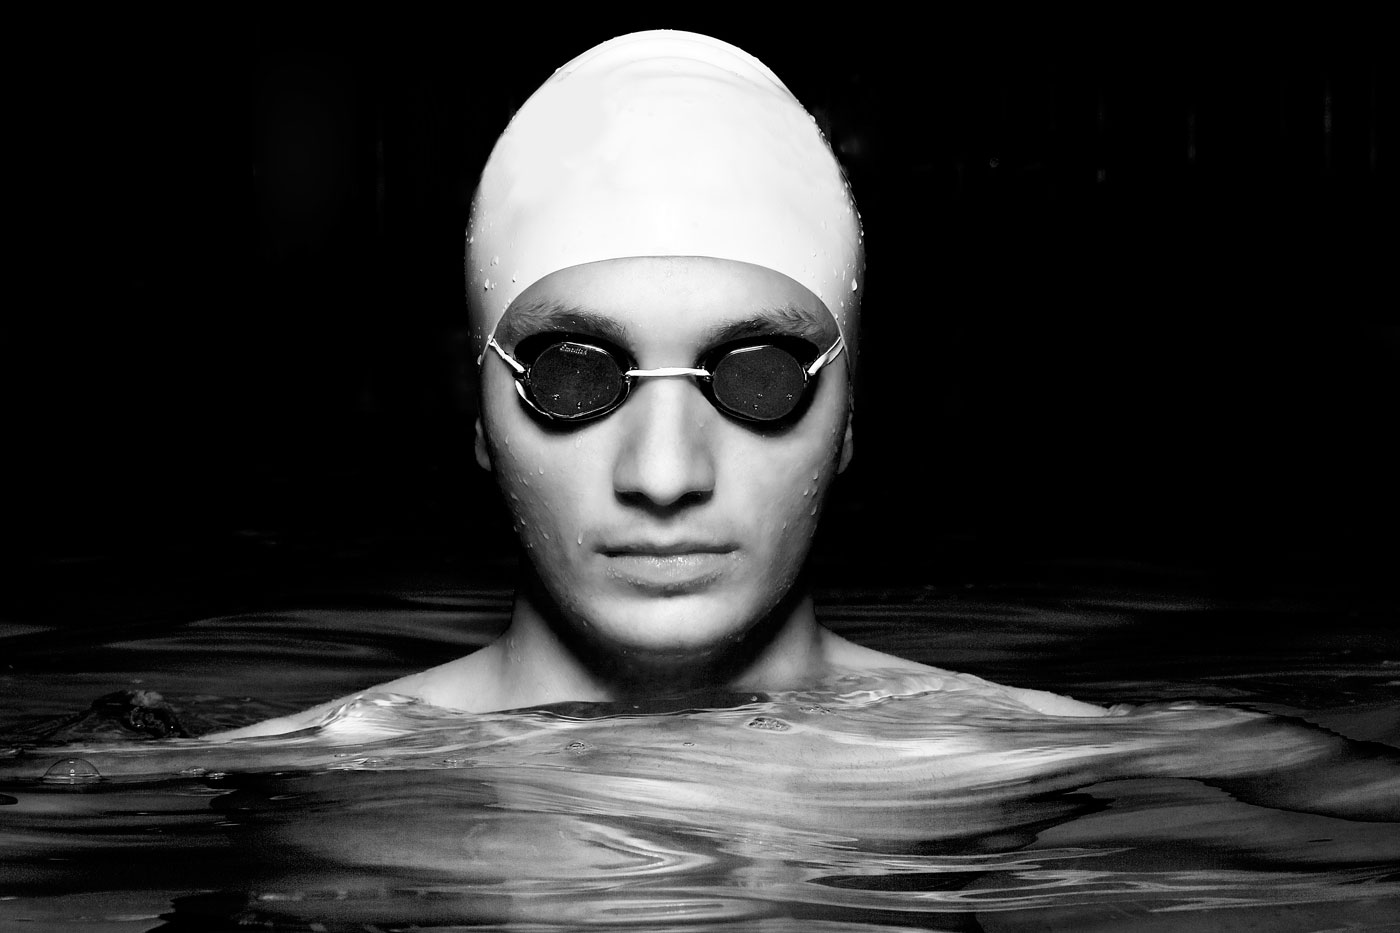 WEB_SwimmingPortrait02